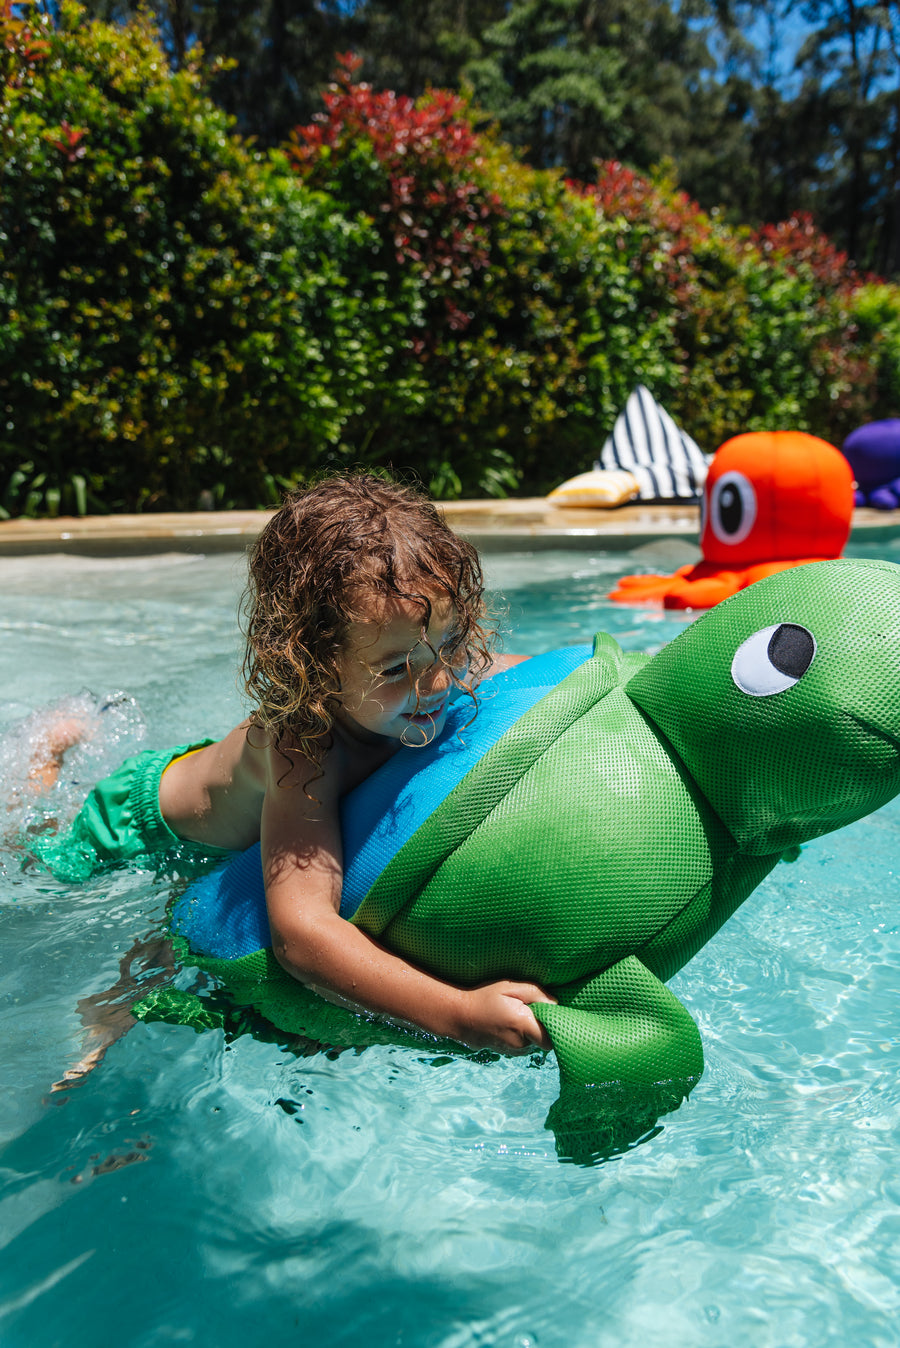 Myrtle the Turtle Pool Toy - Pre-Order Now!